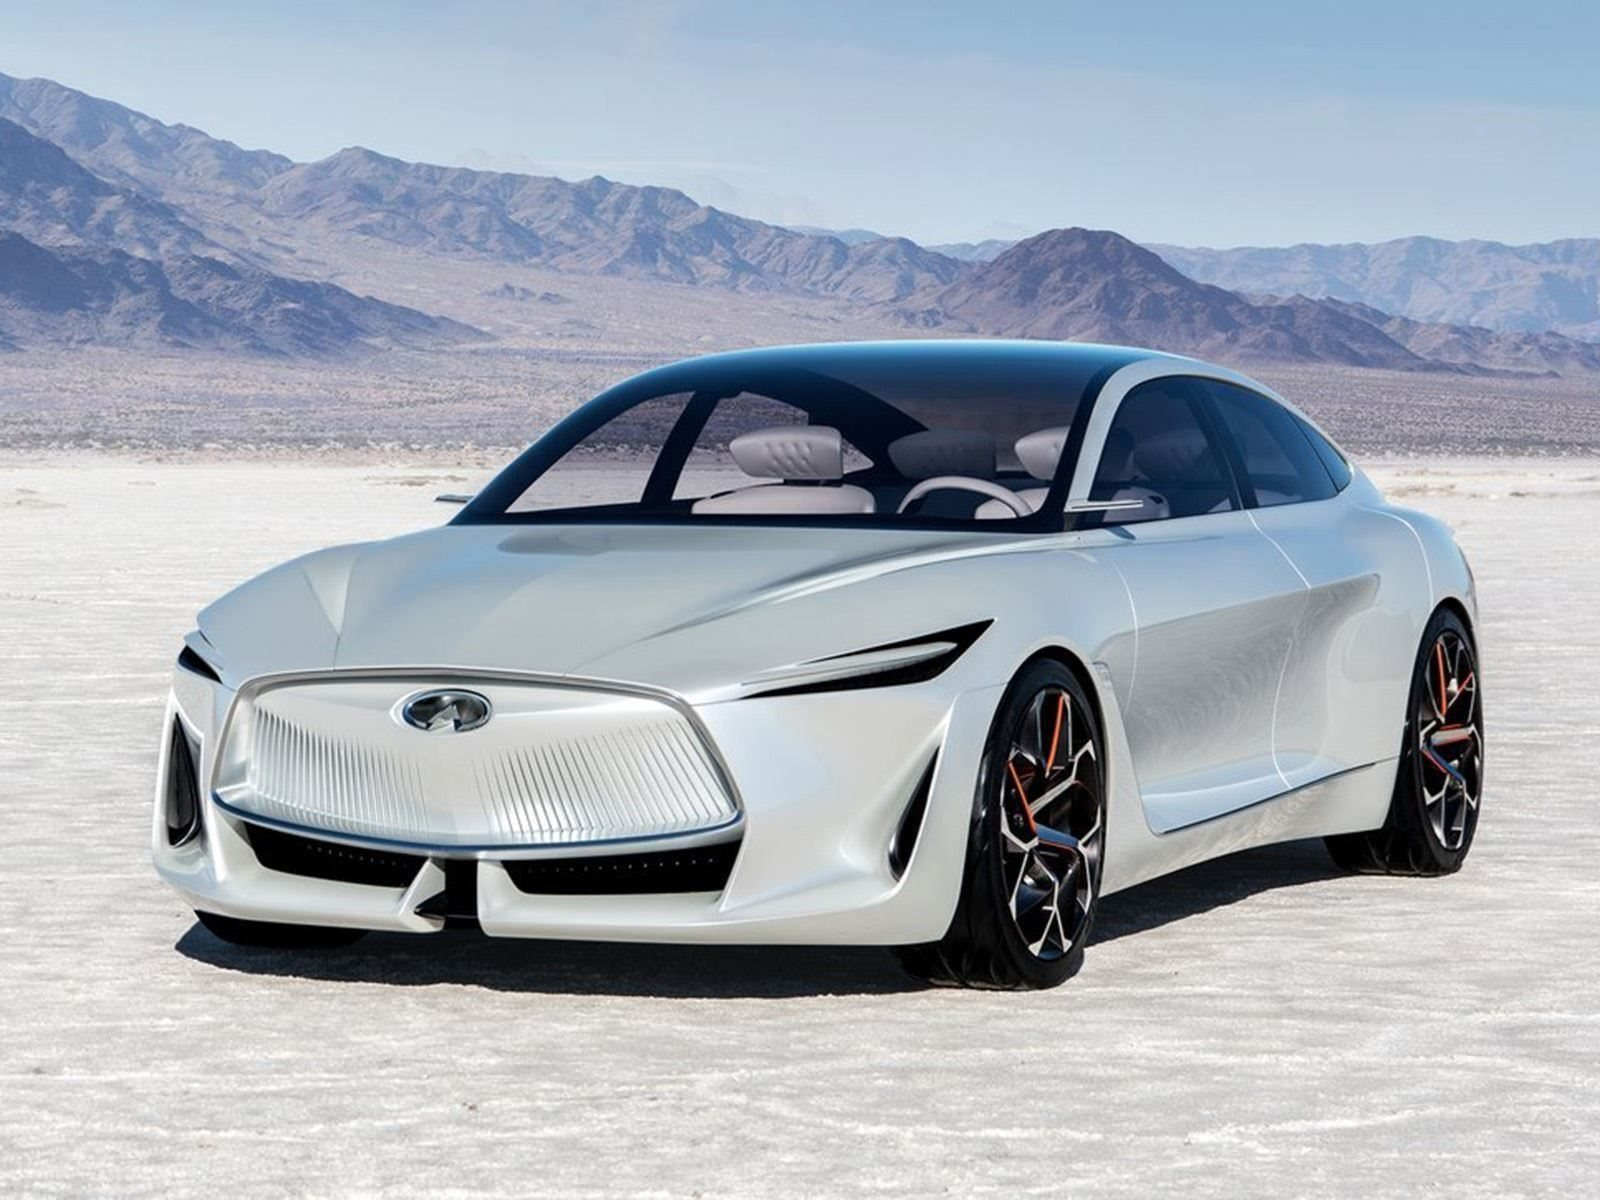 this is the reason why so many infiniti models feel old